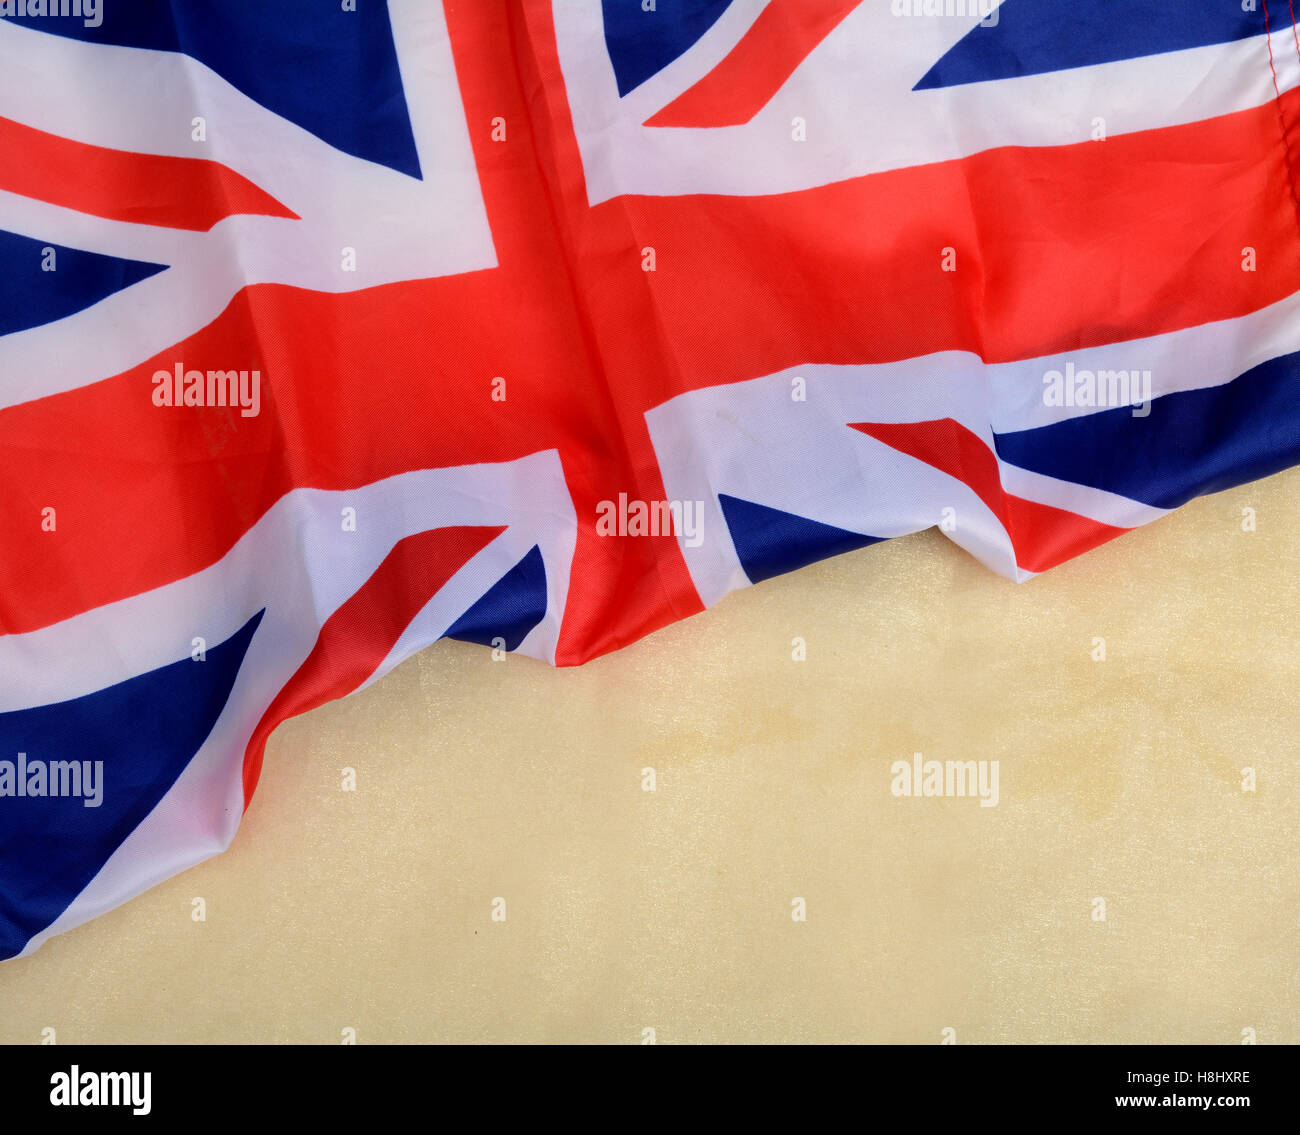 United Kingdon Union Jack UK Flagge Banner Vorlage Stockfoto, Bild ...